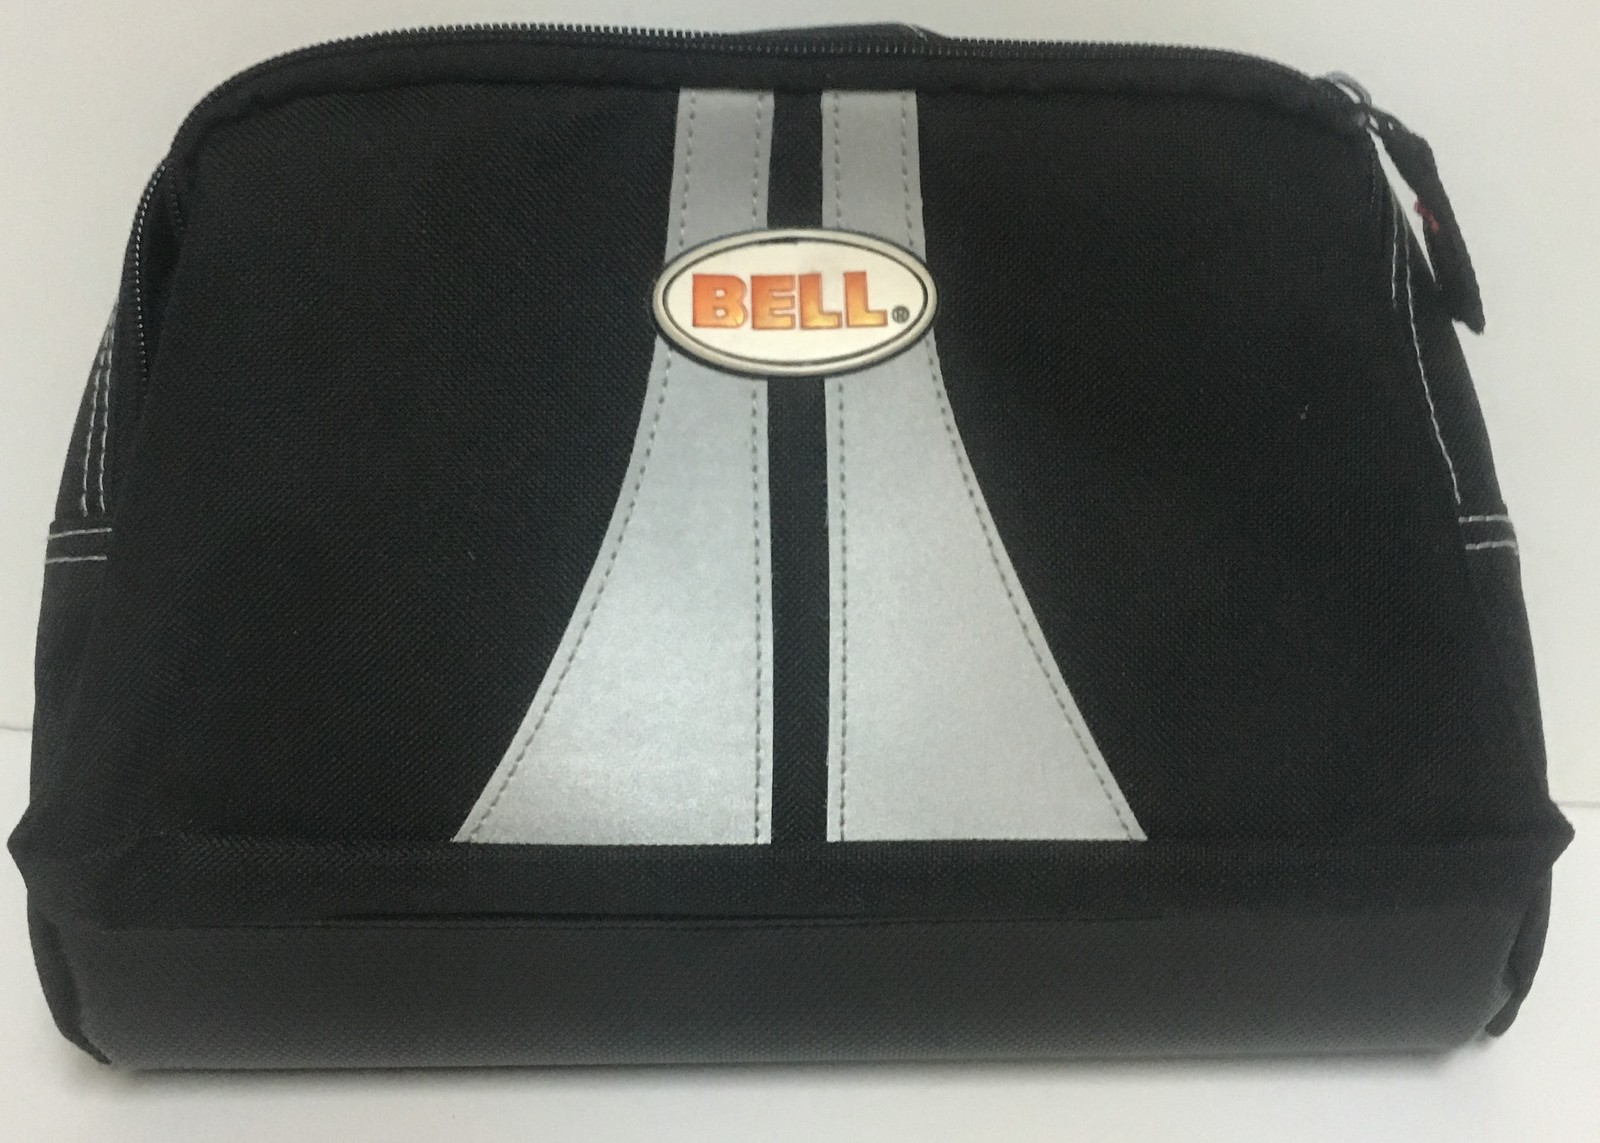 """BELL Reflective Belt Bag Motorcycle Hiking Travel 11"""" x 8"""" x 6"""" Two Compartments"""